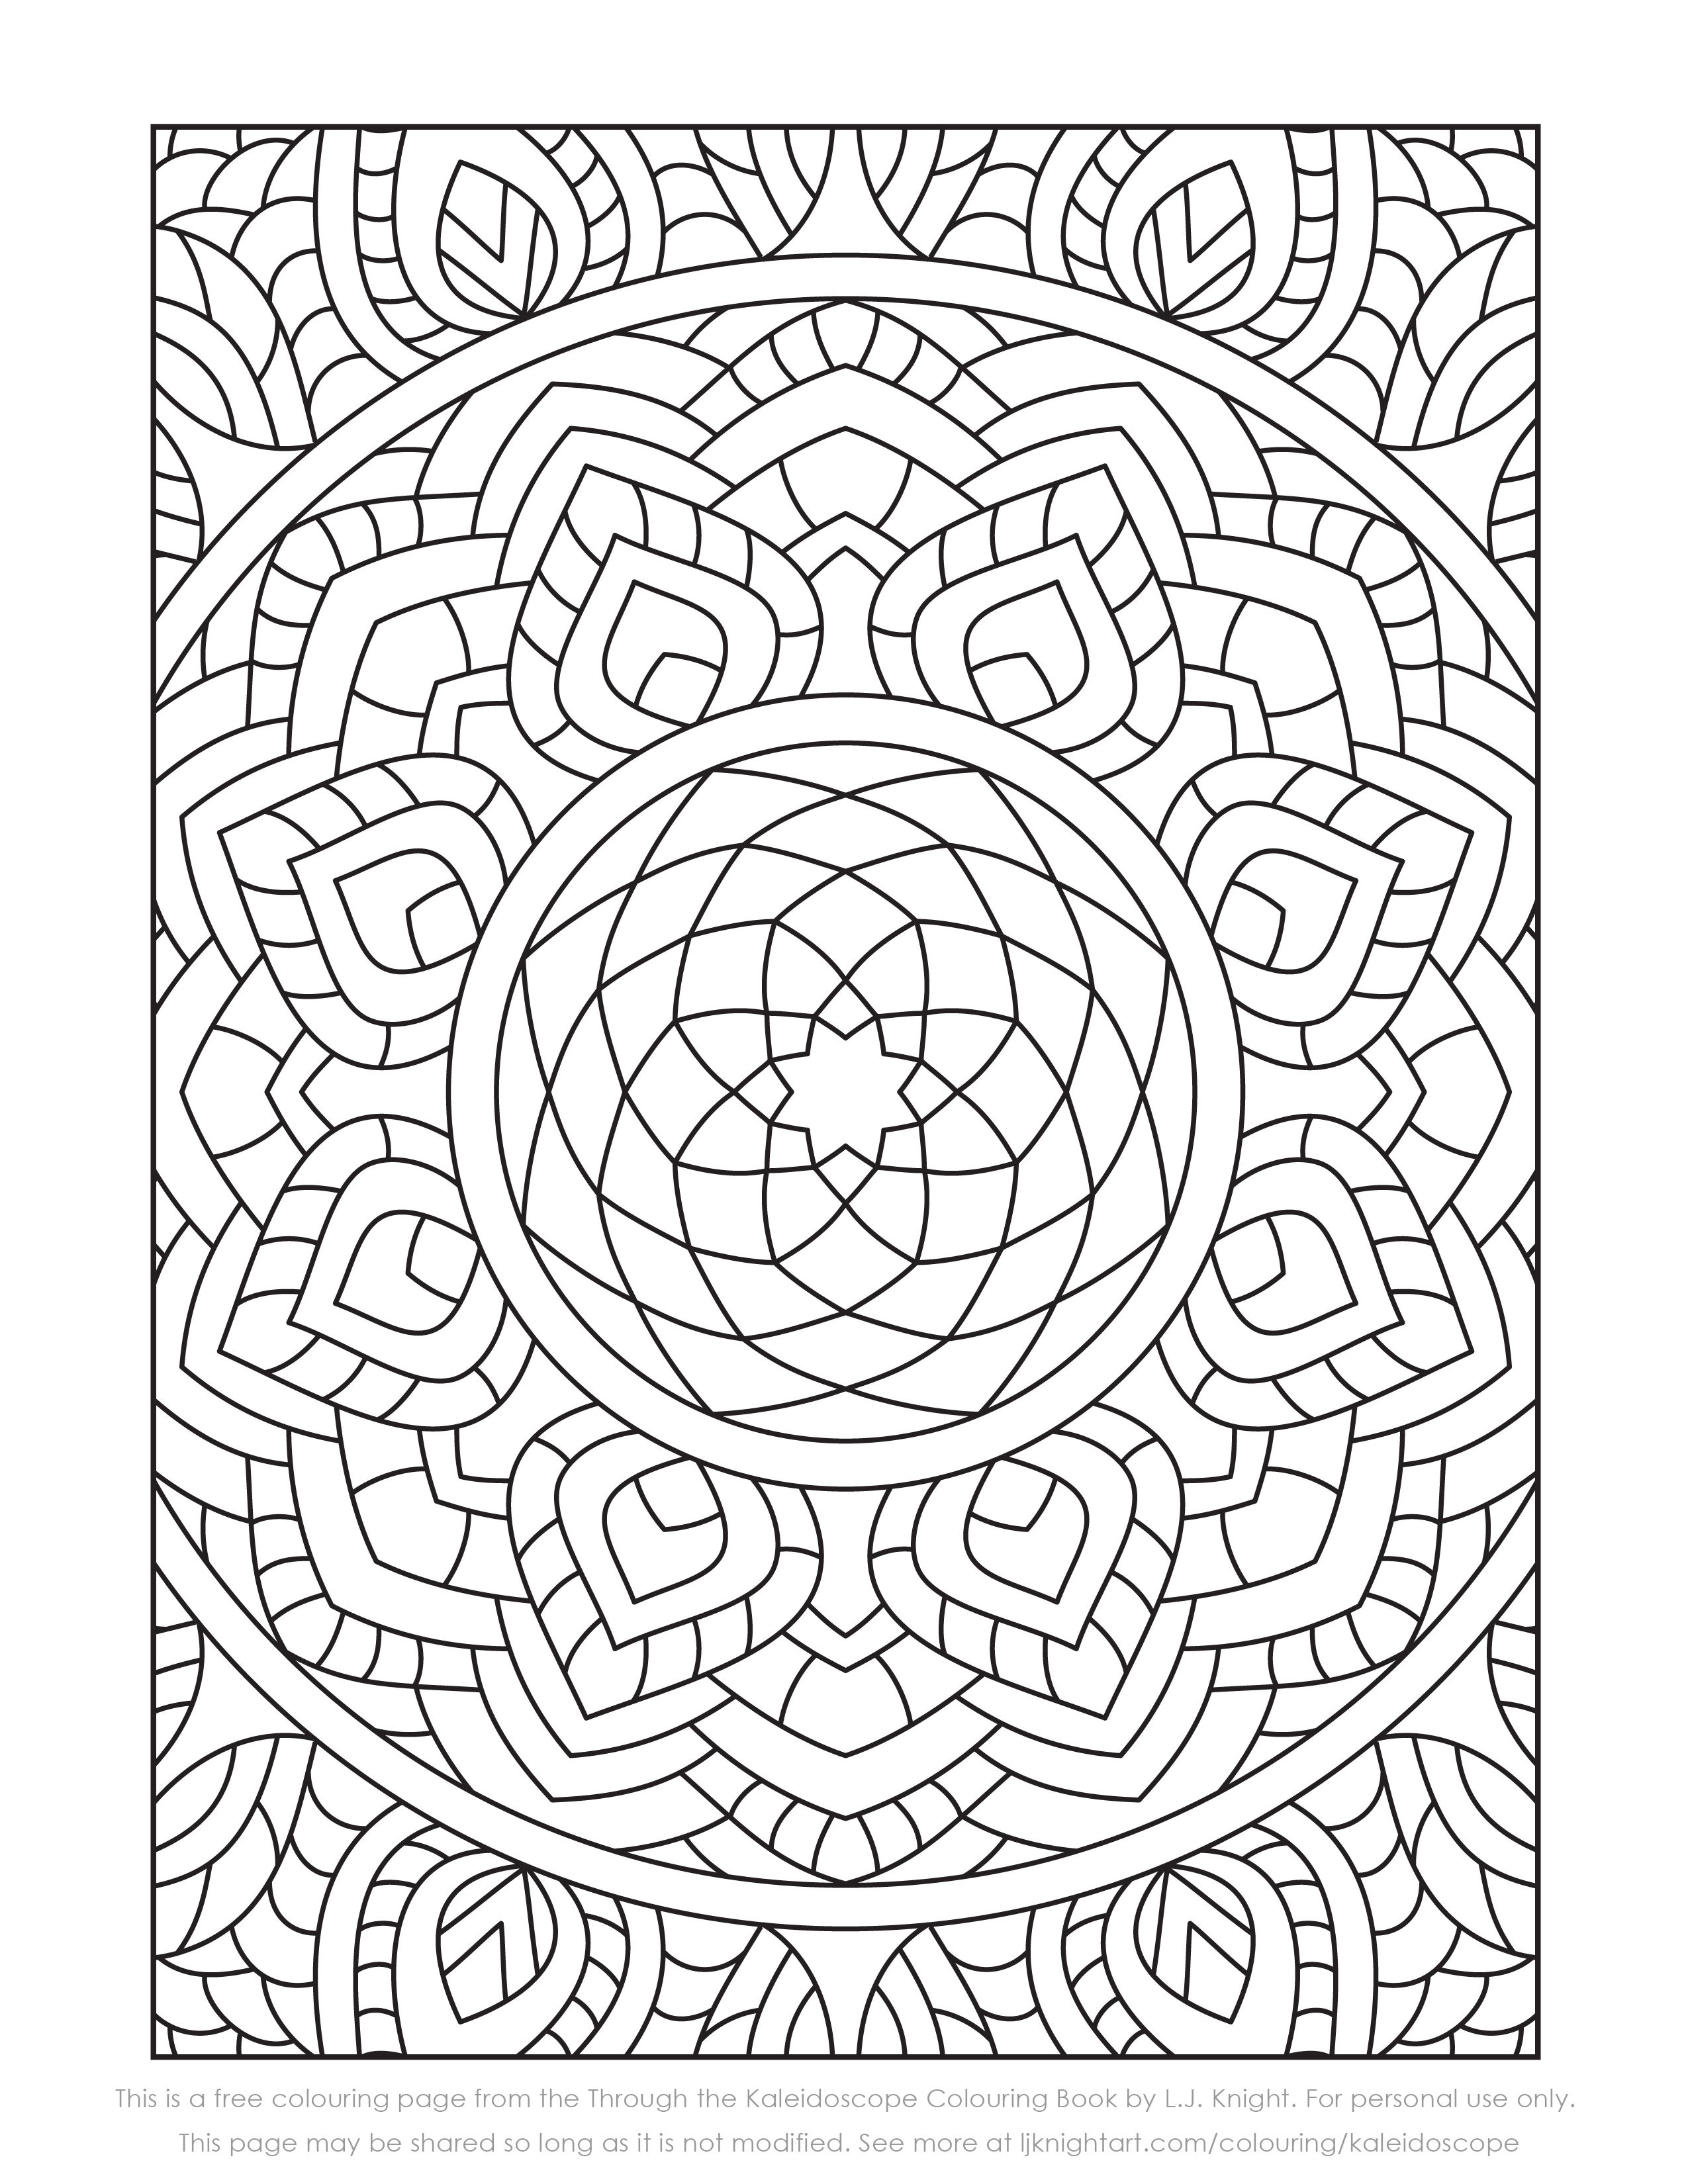 Ying Yang Colouring Page Patterns Colouring Book Pattern Coloring Pages Abstract Coloring Pages Cute Coloring Pages